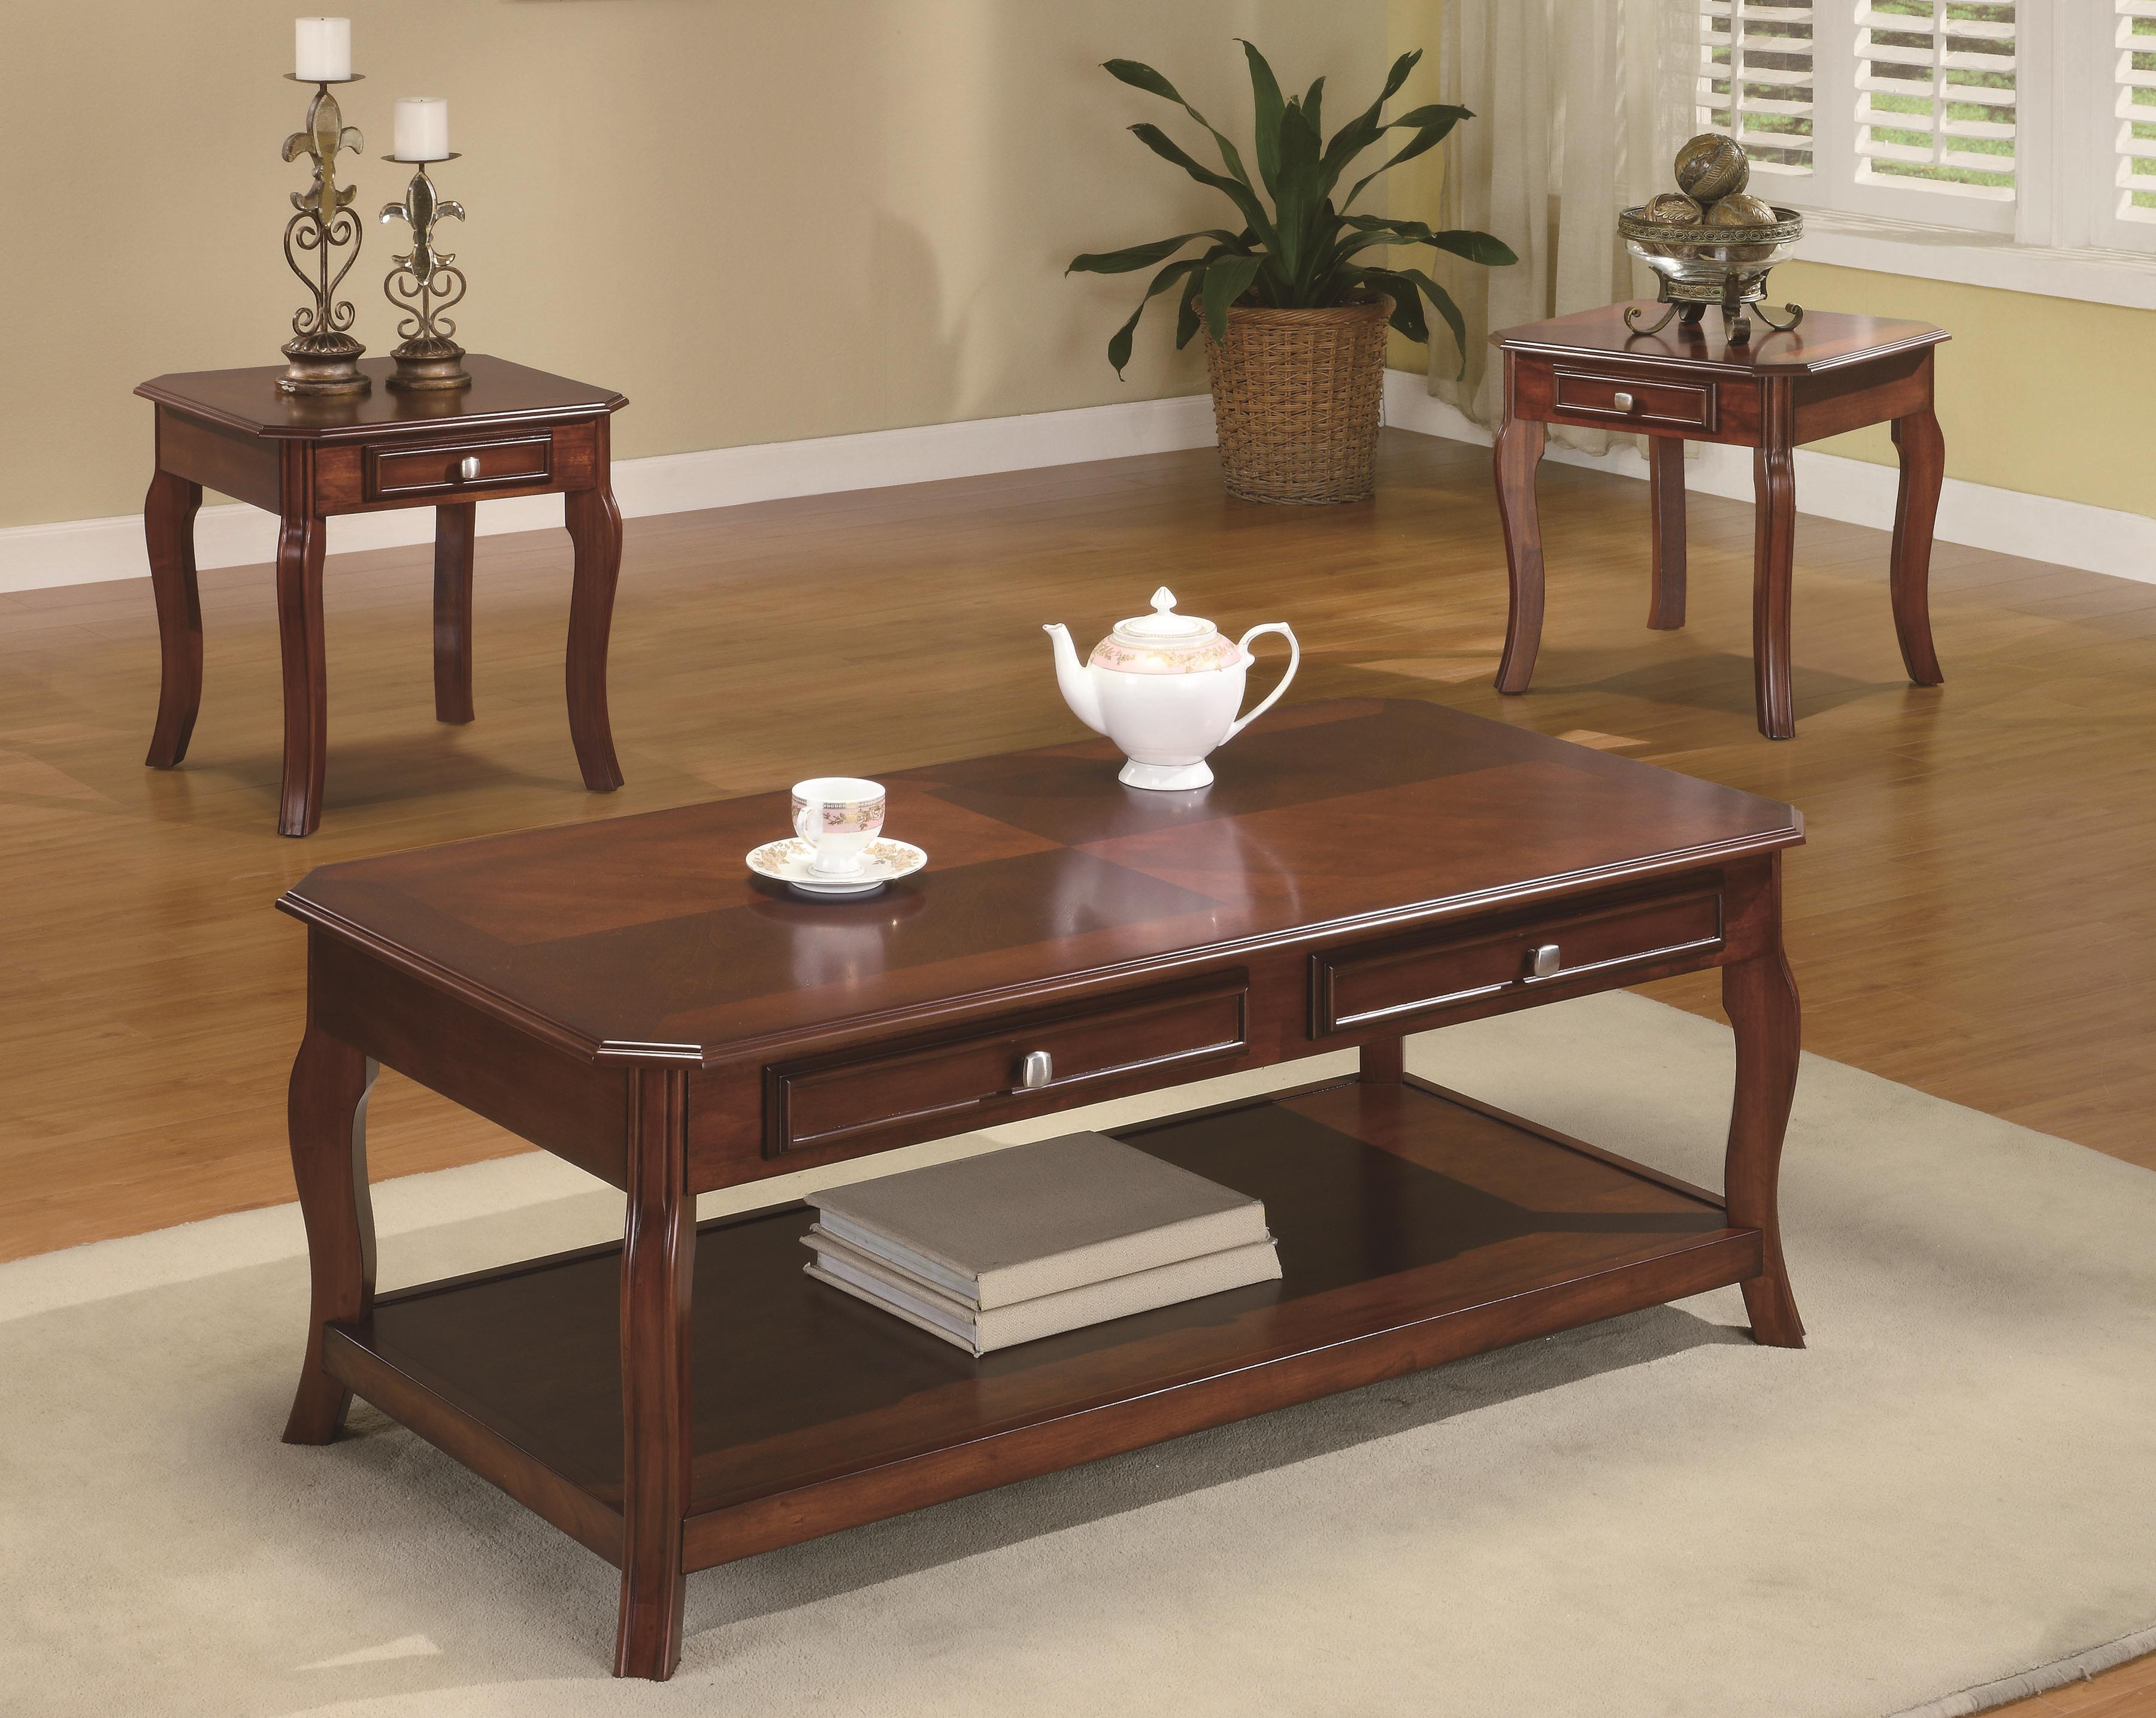 Occasional Table Sets 3 Piece Table Sets By Coaster Sam Levitz